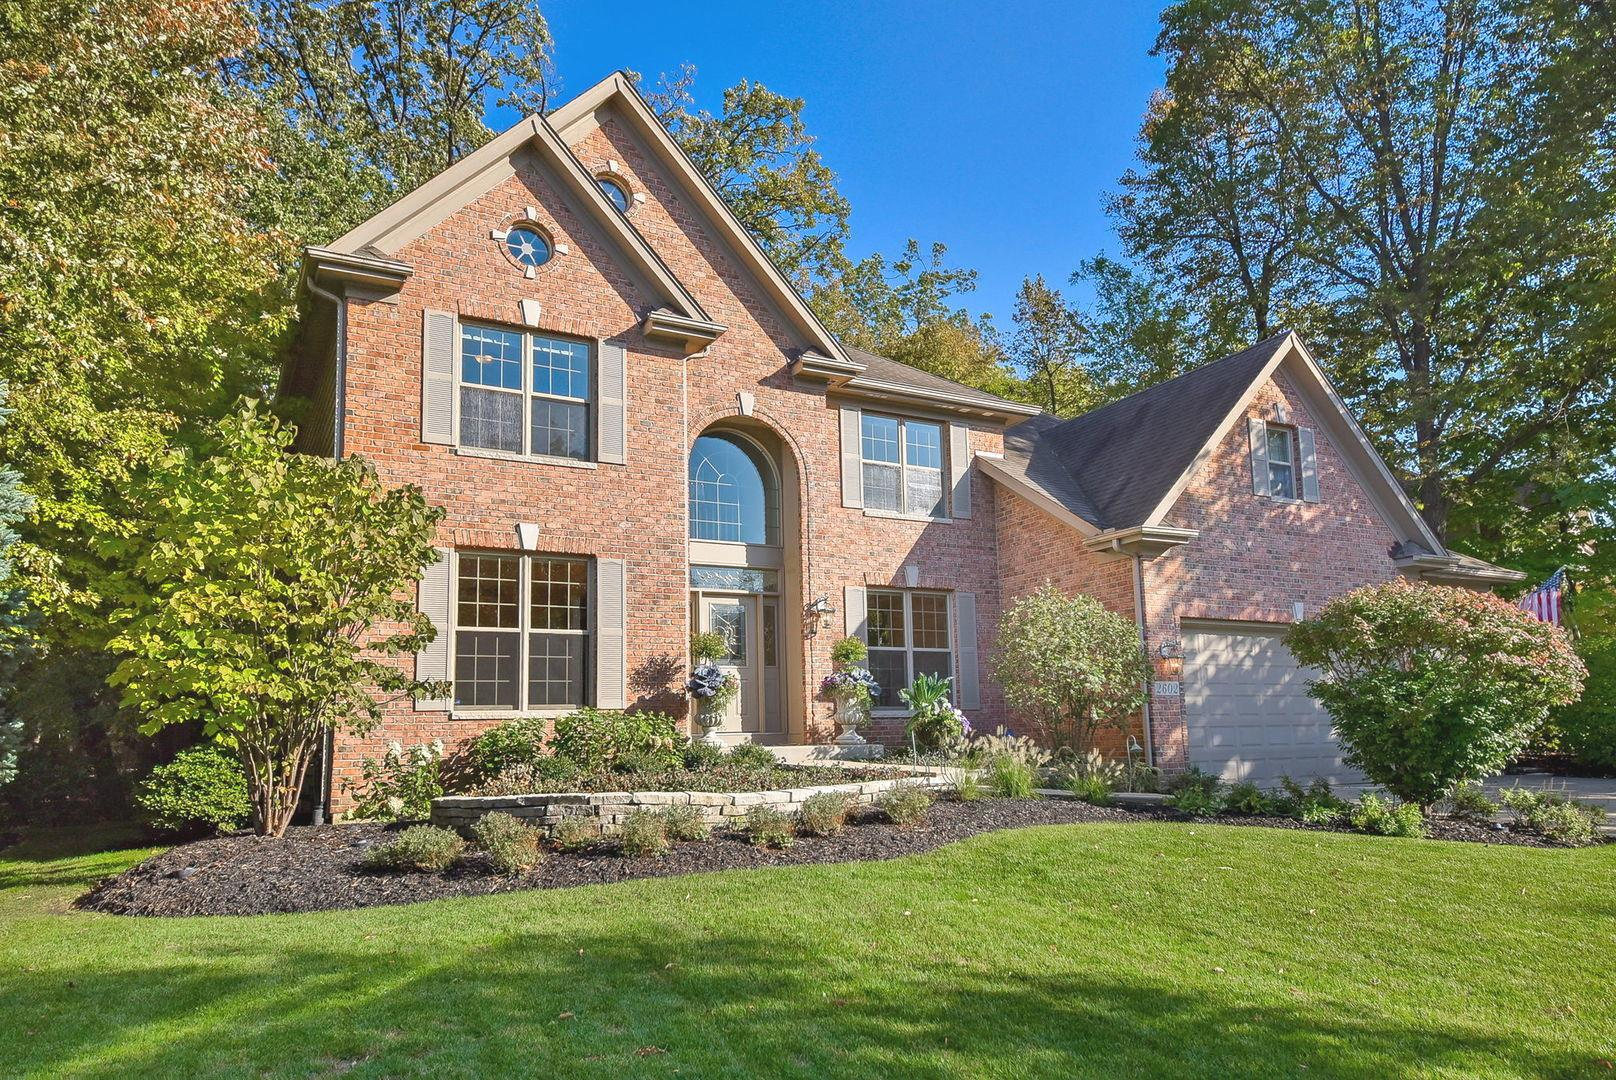 2602 Majestic Oaks Lane, Saint Charles, IL 60174 - #: 10898180